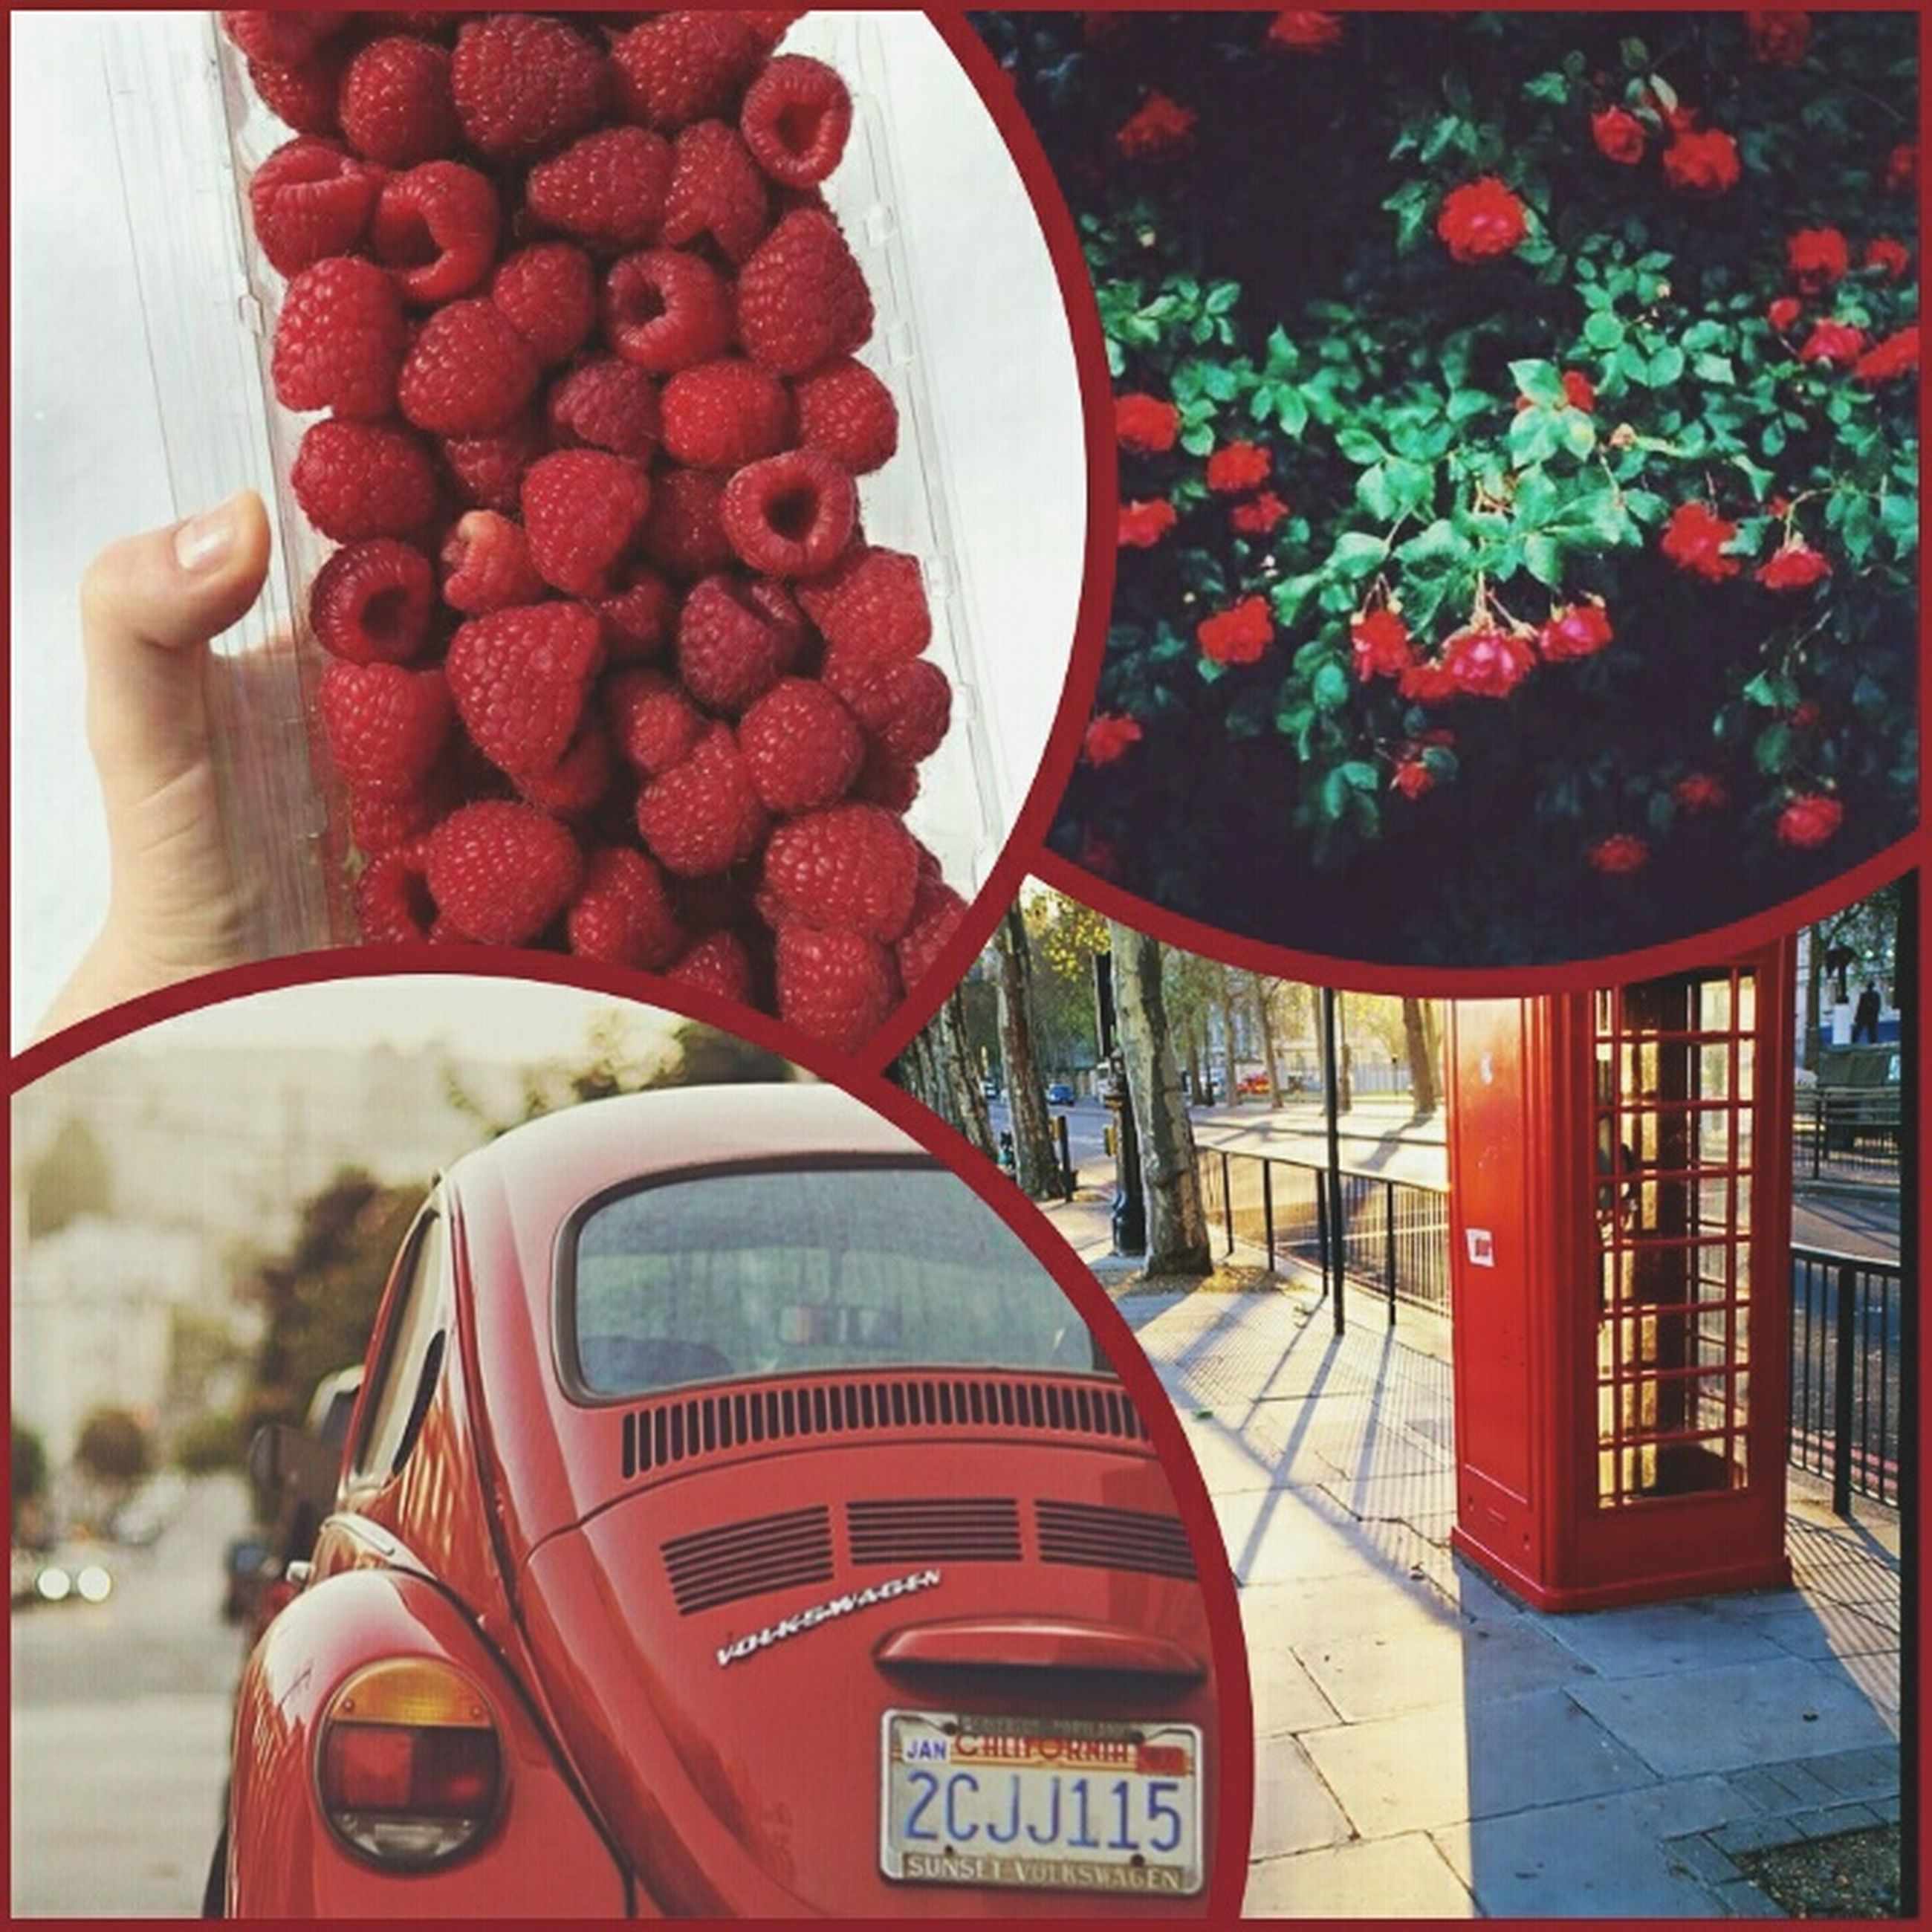 red, transportation, fruit, food and drink, day, mode of transport, land vehicle, communication, lifestyles, food, text, close-up, part of, car, outdoors, holding, tree, cropped